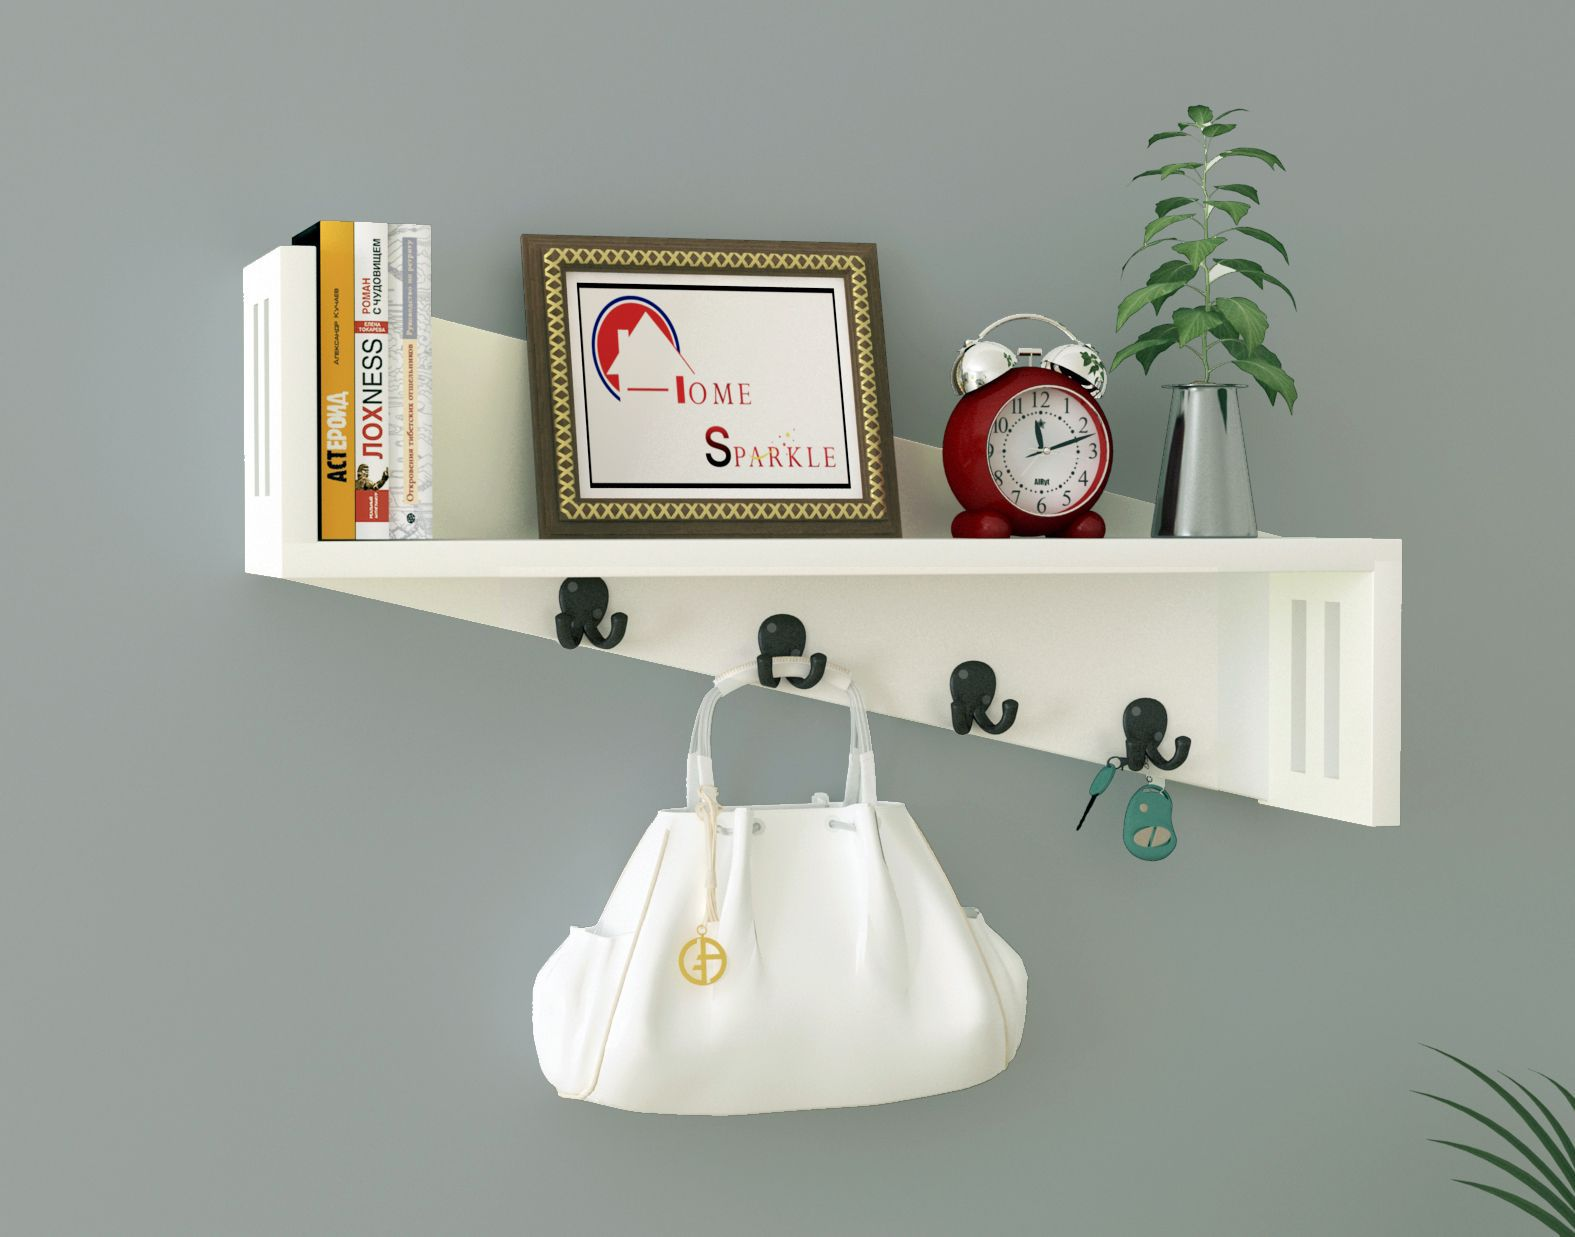 Home Sparkle MDF Wall shelf with Key Holder For Wall Décor -Suitable For Living Room/Bed Room (Designed By Craftsman)